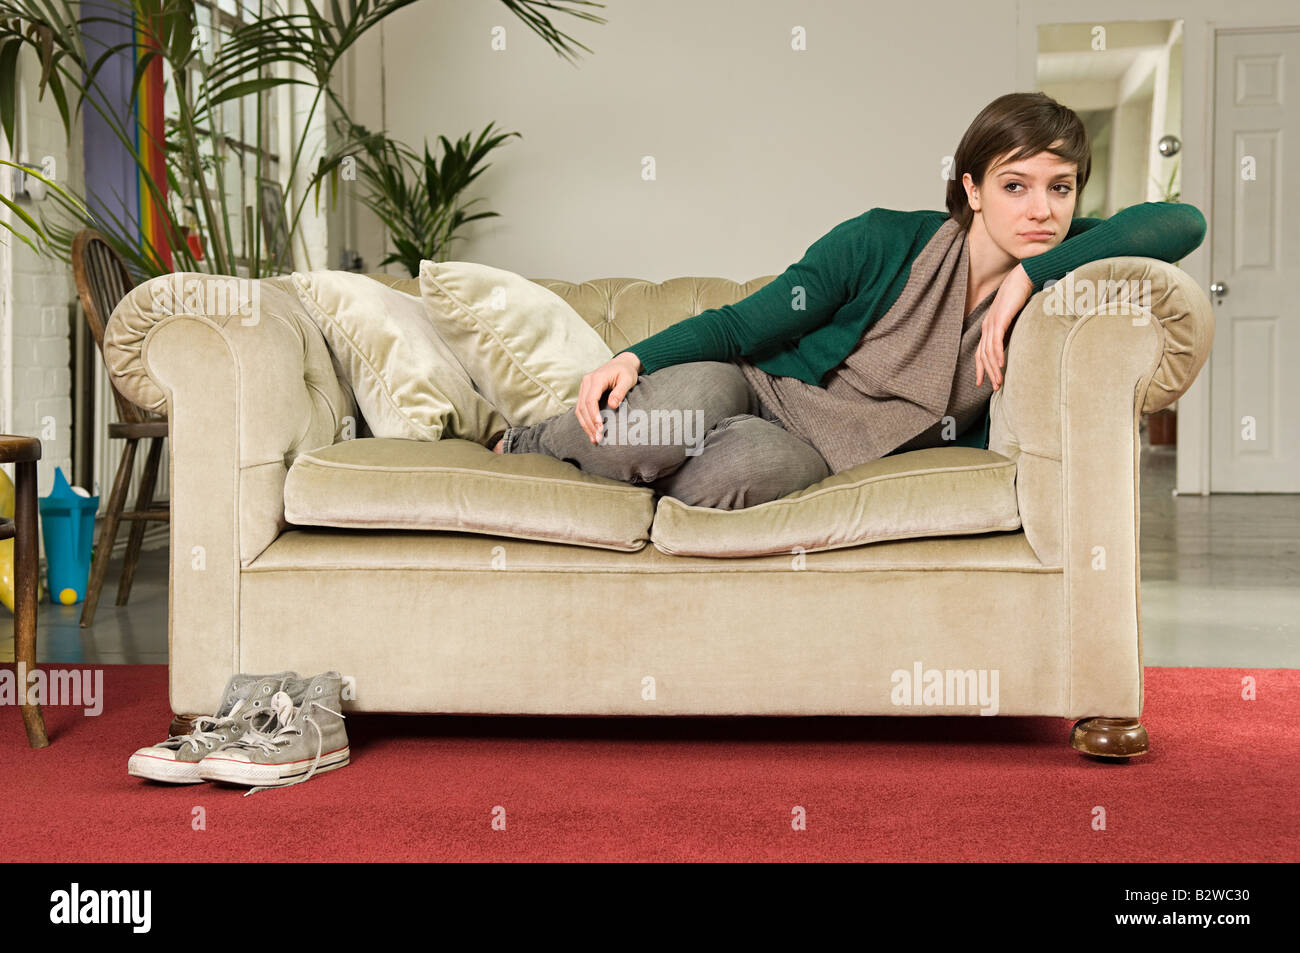 Sullen young woman on sofa - Stock Image